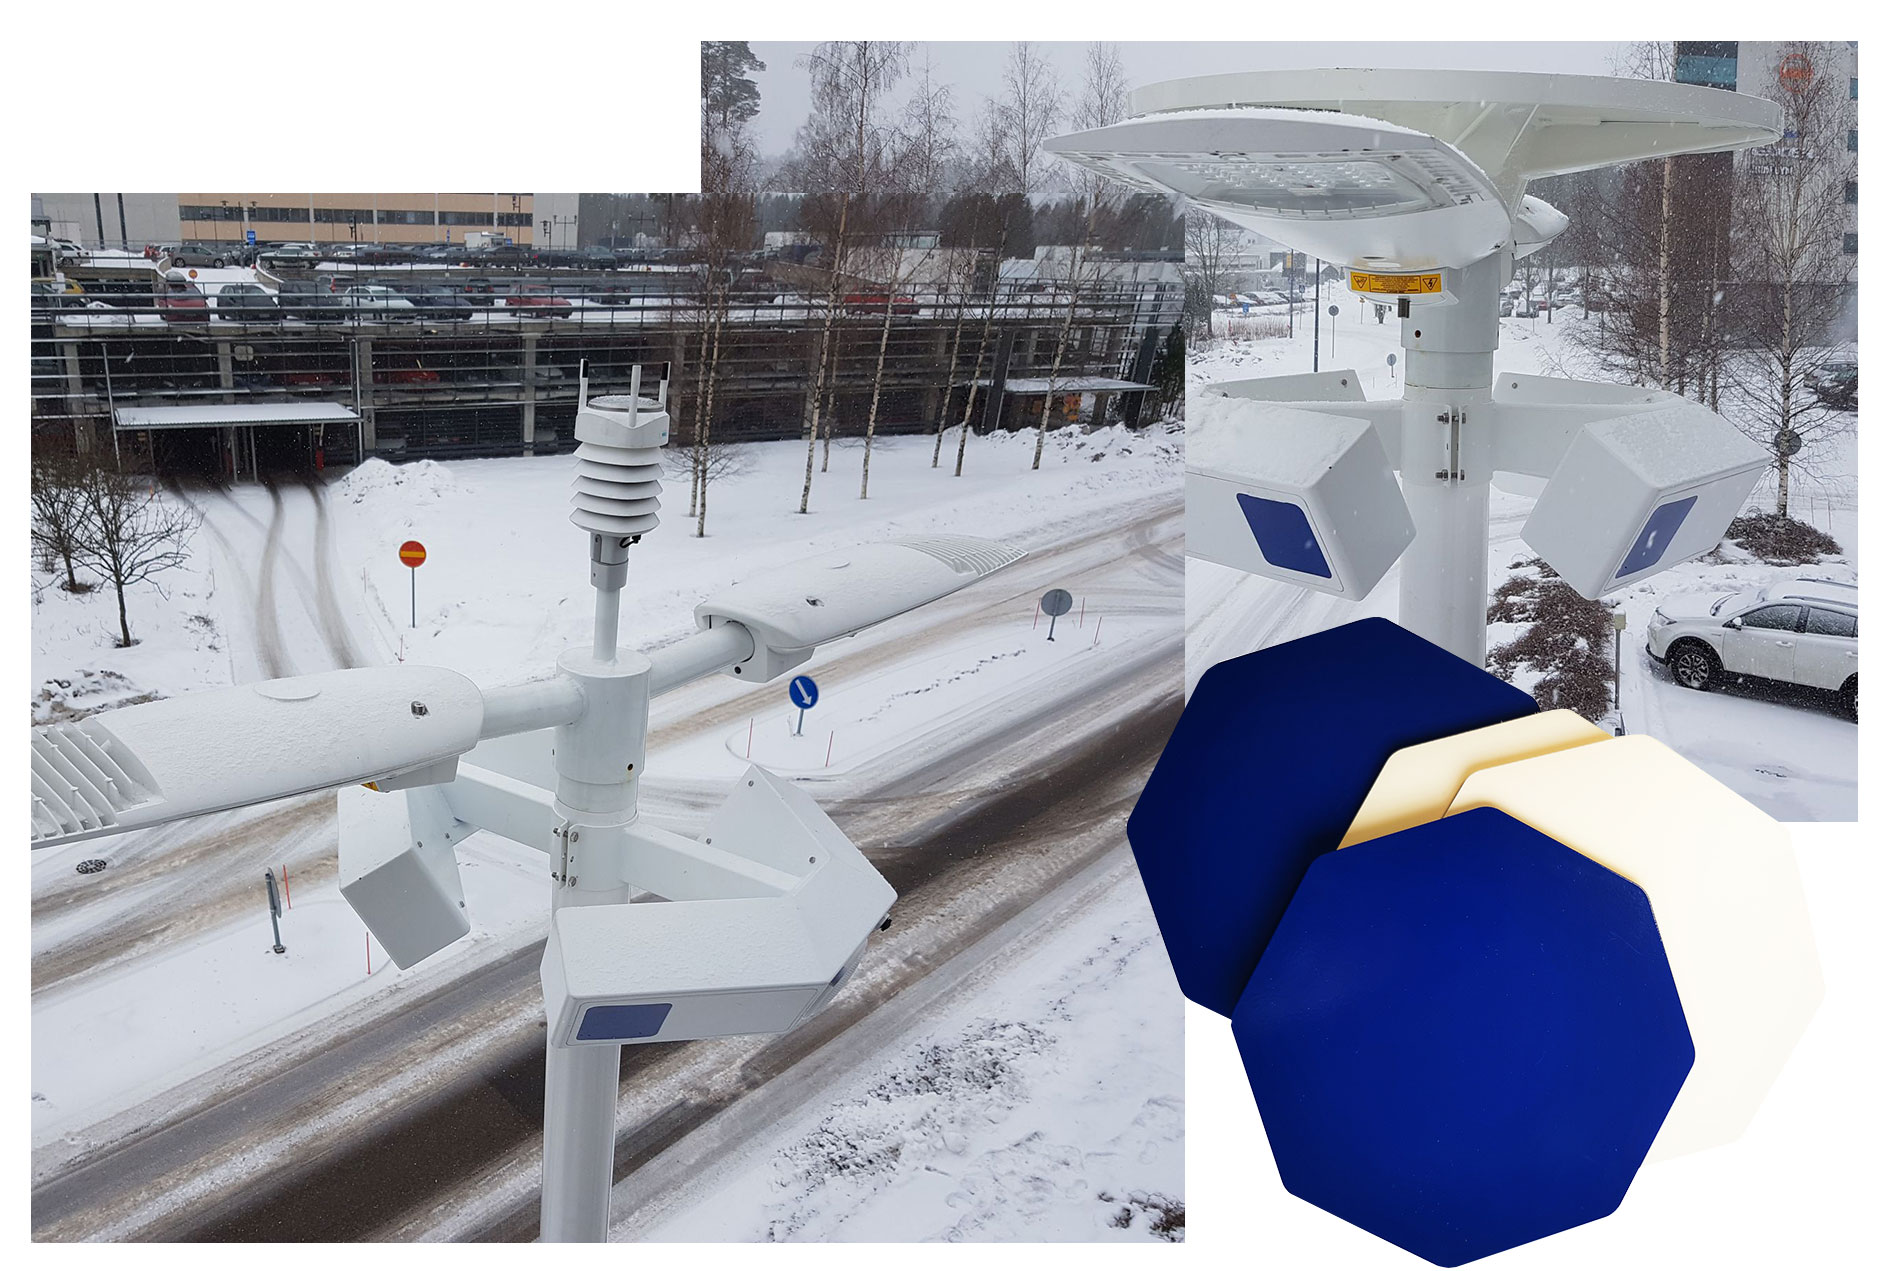 We are involved in the Nokia Bell Labs driven LuxTurrim5G project developing and demonstrating fast 5G network based on smart light poles with integrated antennas, base stations, sensors, screens and other devices.